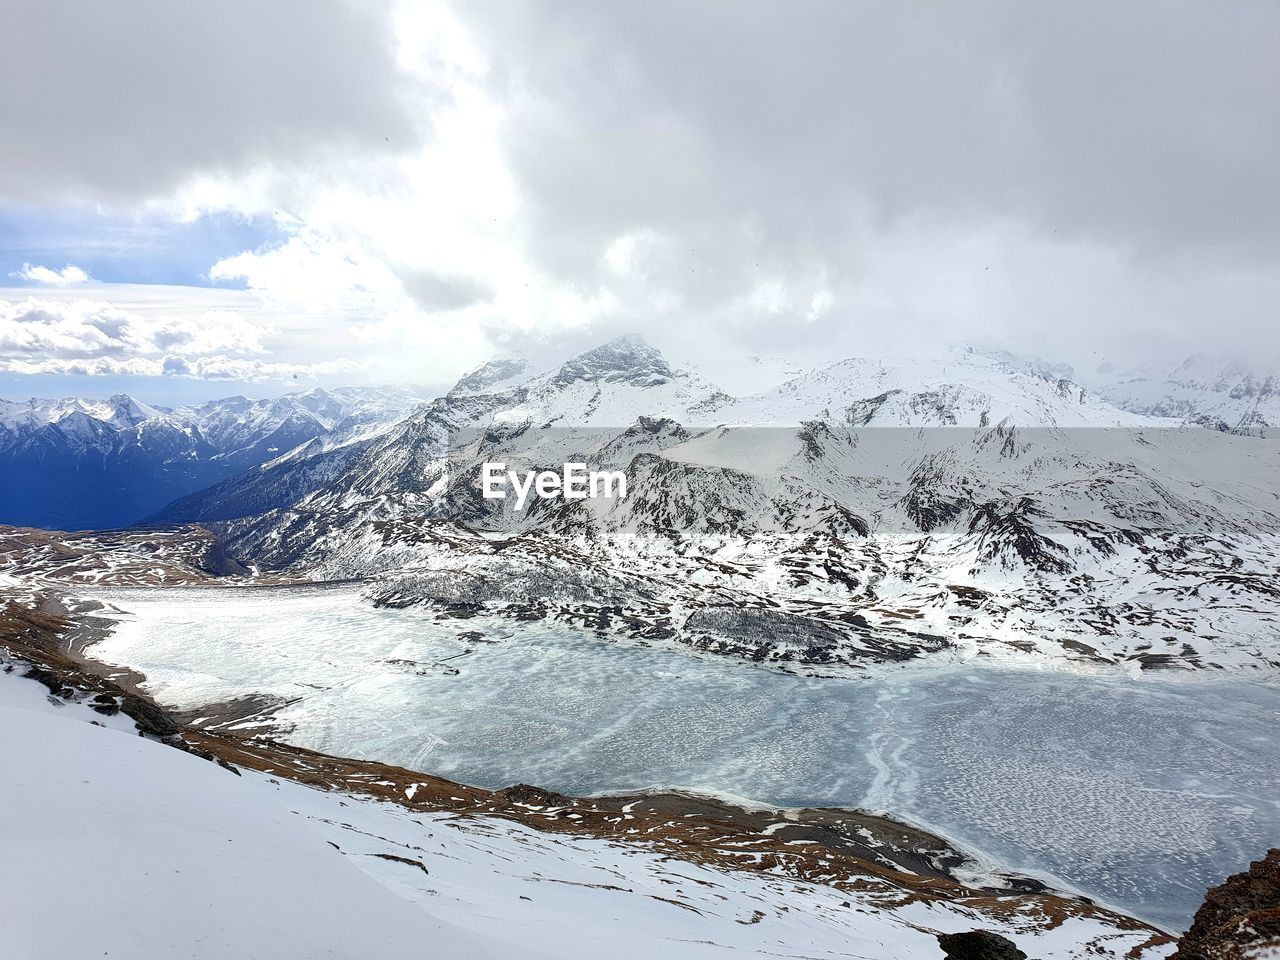 winter, cold temperature, beauty in nature, cloud - sky, scenics - nature, snow, mountain, sky, tranquility, tranquil scene, non-urban scene, nature, white color, day, snowcapped mountain, environment, mountain range, idyllic, no people, powder snow, range